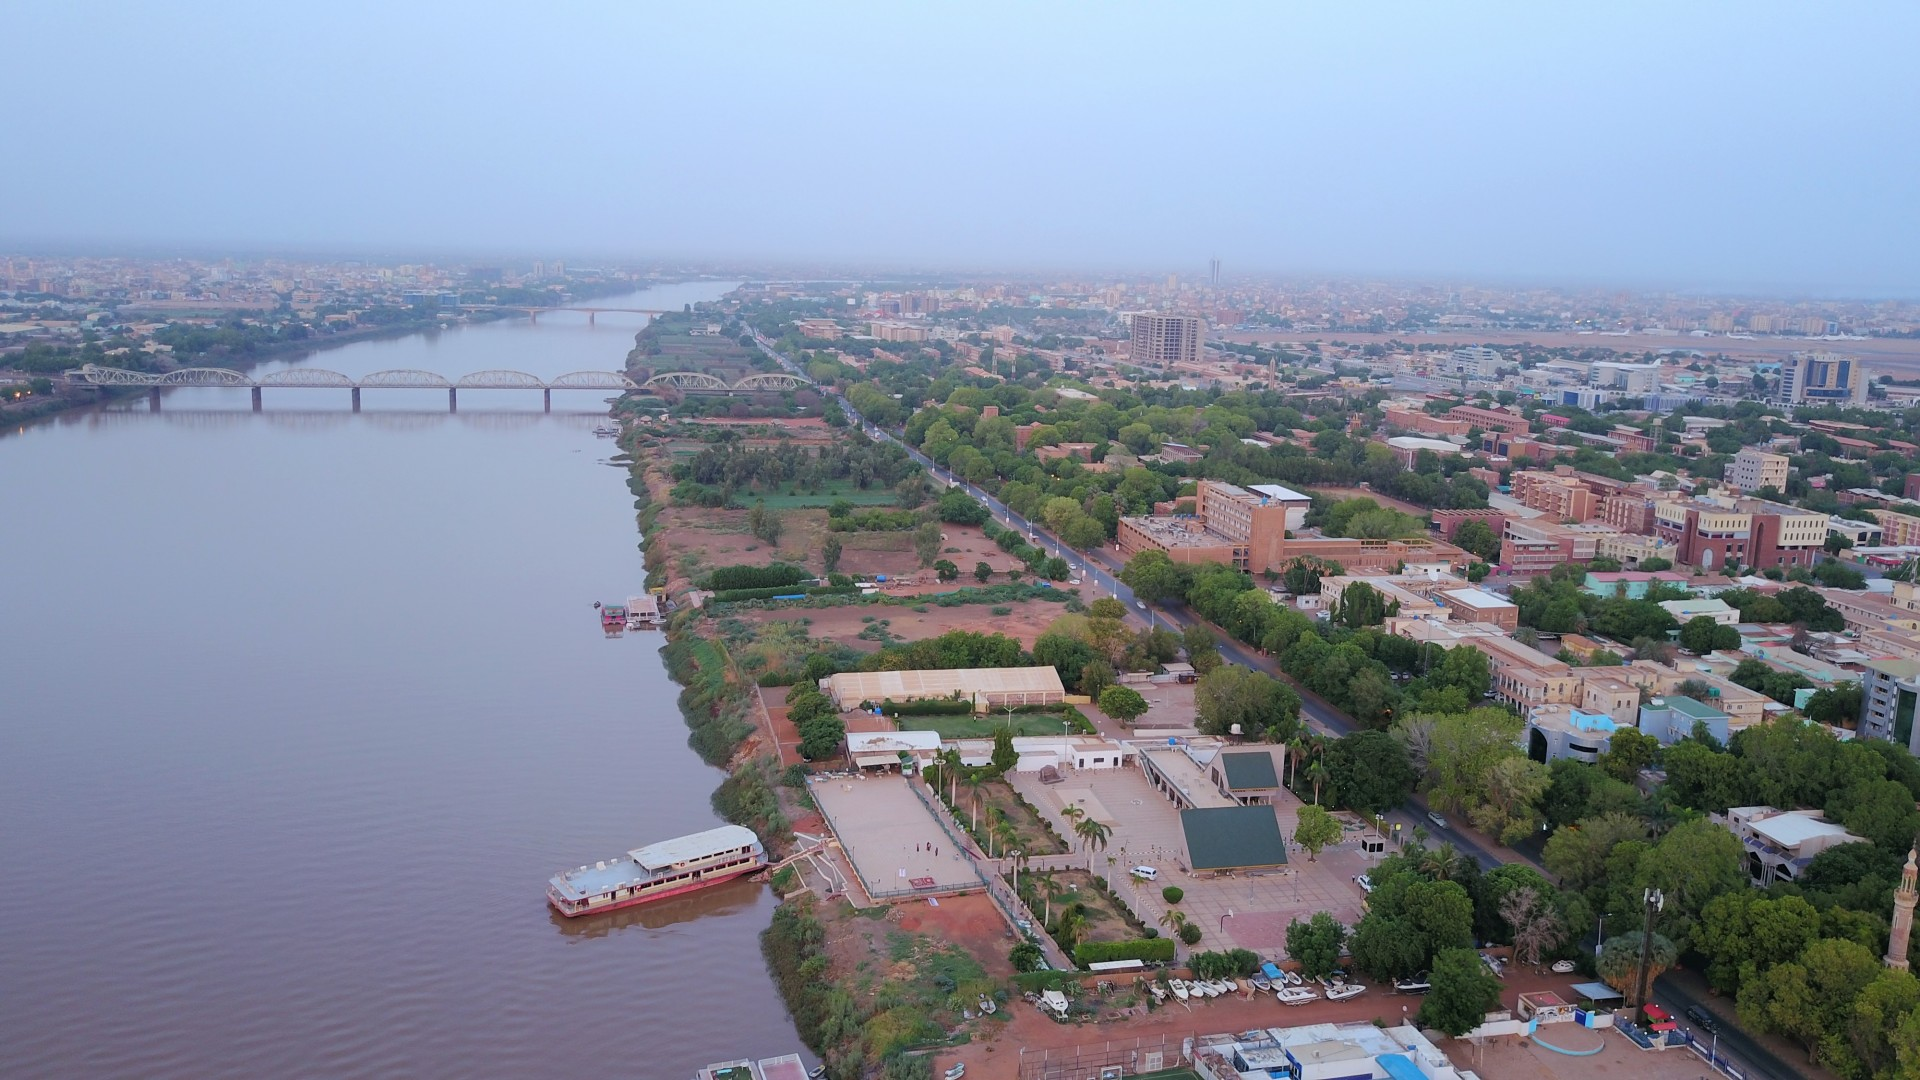 Filling Africa's largest dam risks political tension if engineering realities are ignored - The University of Manchester